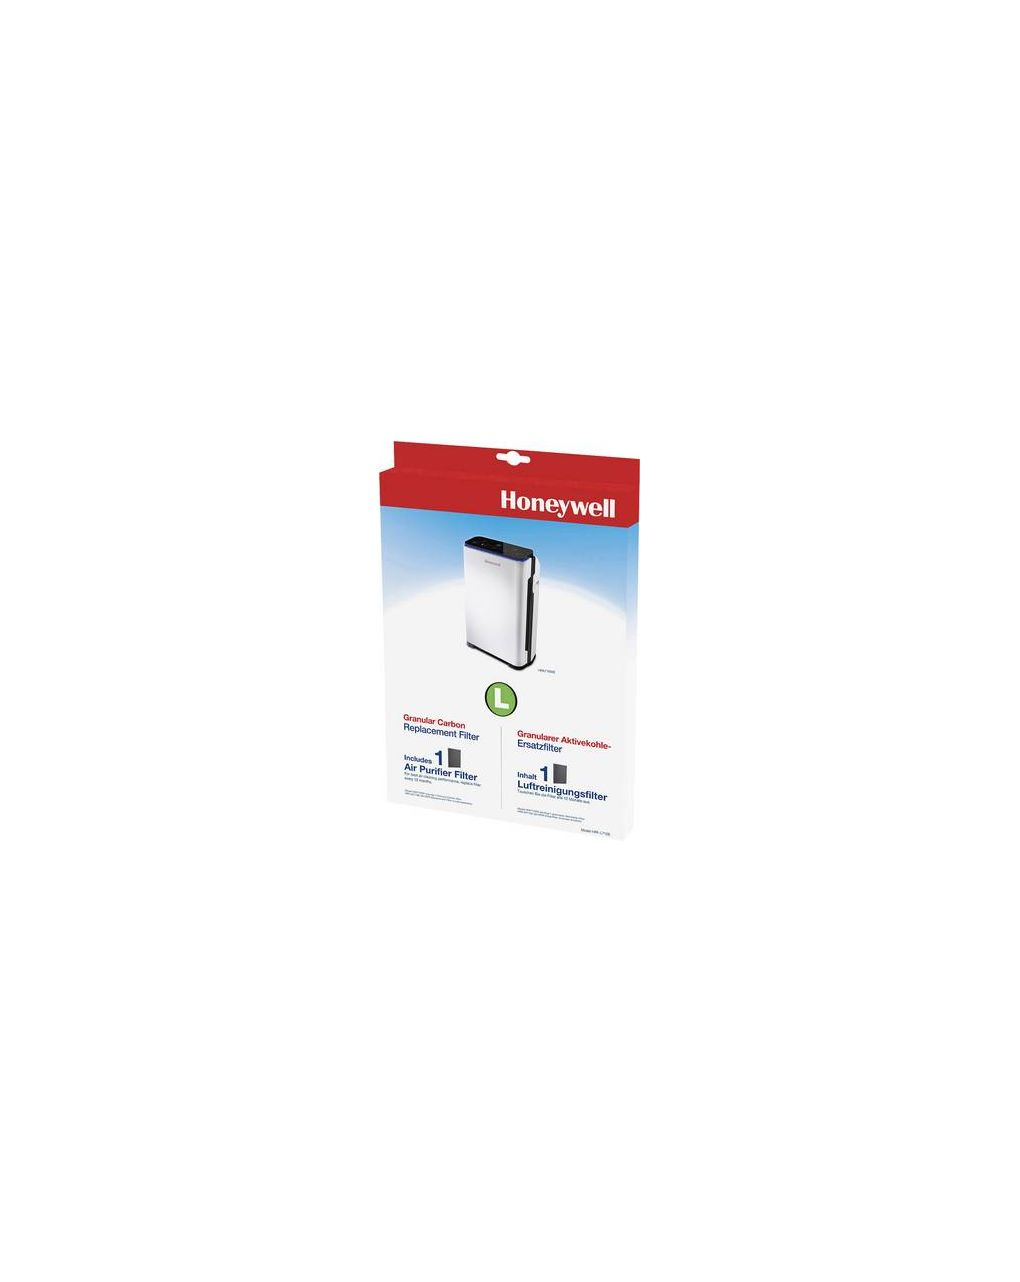 Honeywell - filtro a carbone attivo per purificatore d'aria hpa710we - Honeywell